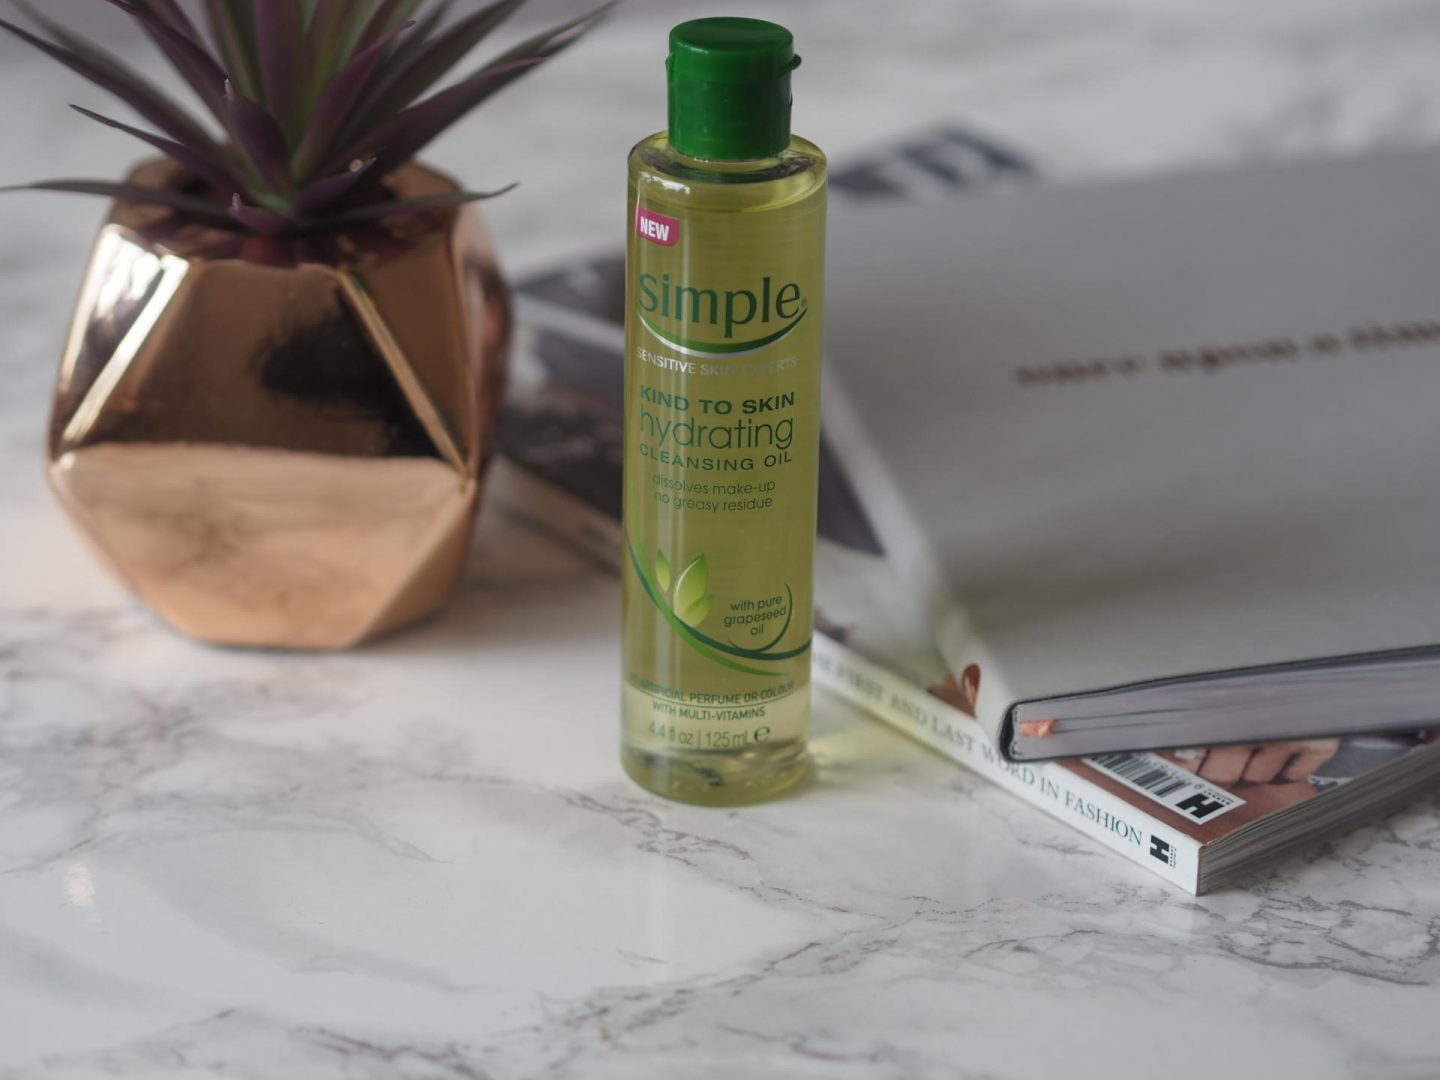 Simple Hydrating Cleansing Oil and best drugstore beauty buys